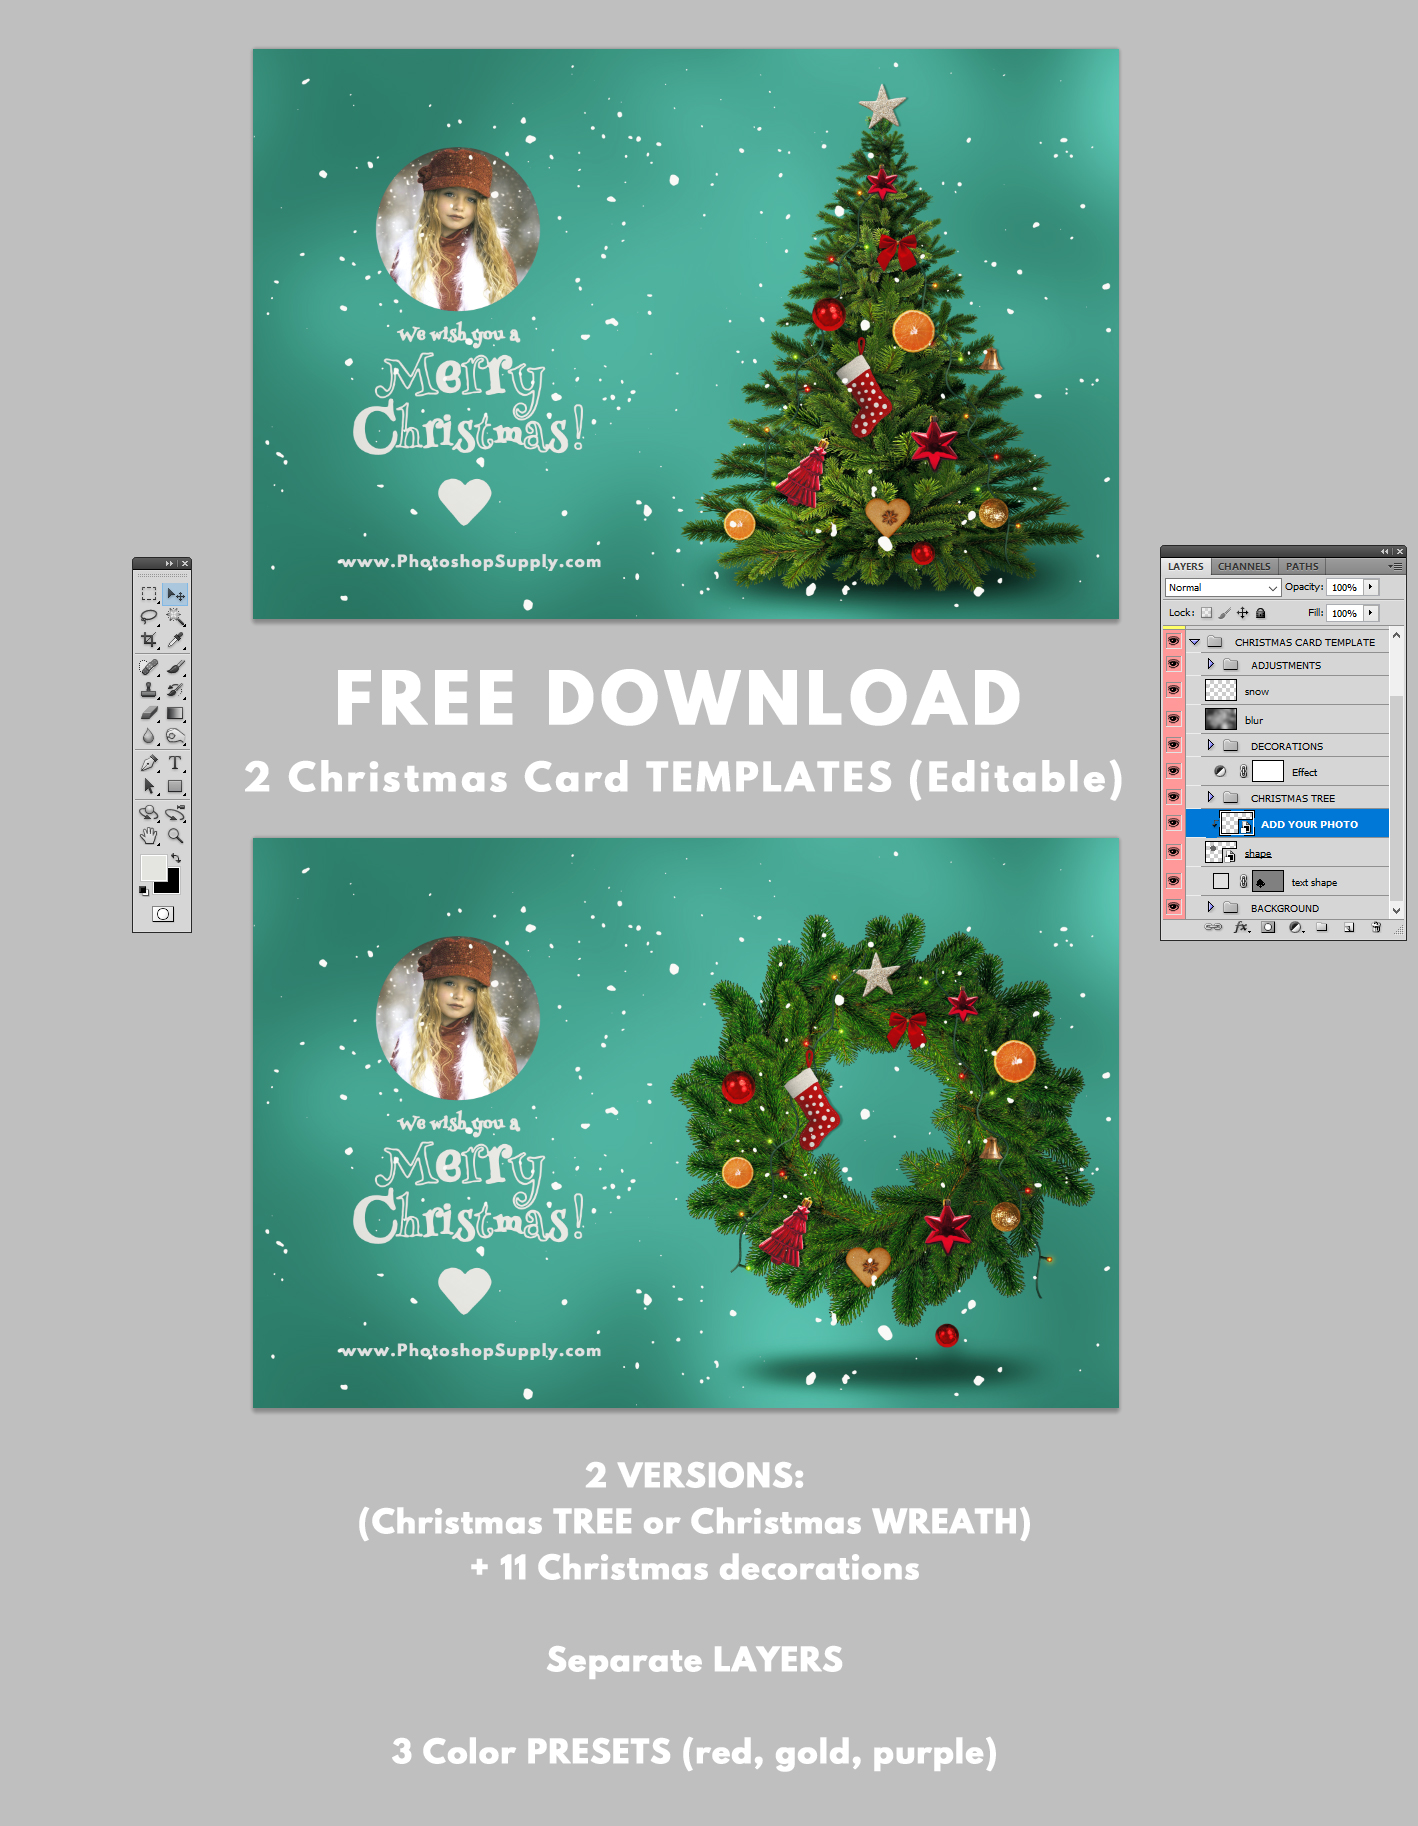 Christmas Card Templates For Shop Shop Supply